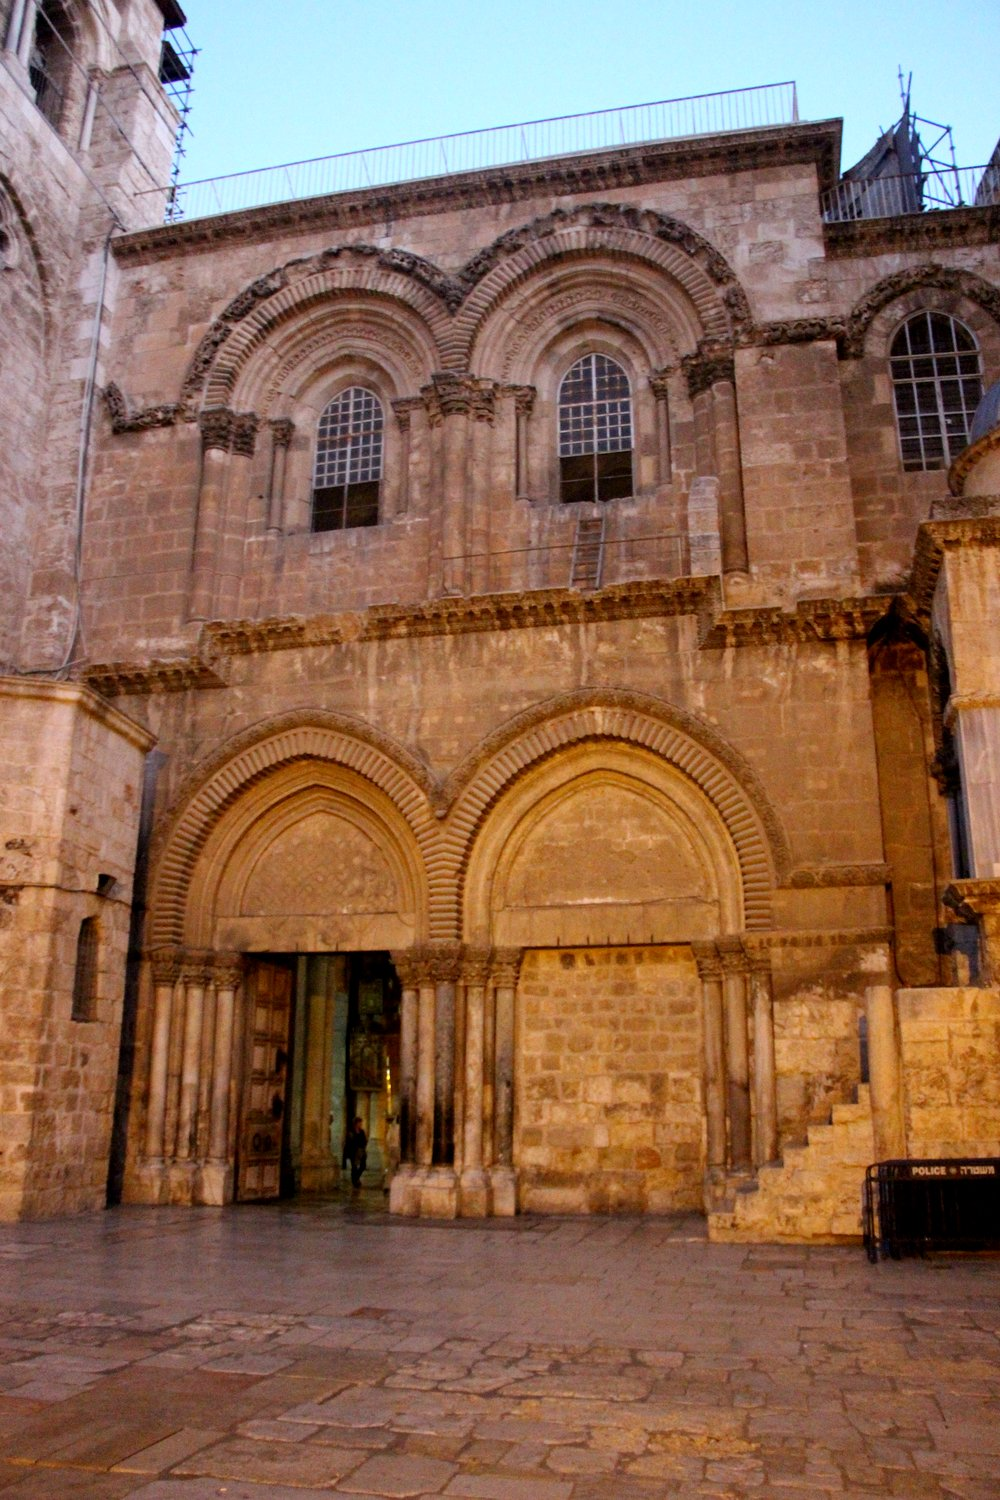 The church's entrance.